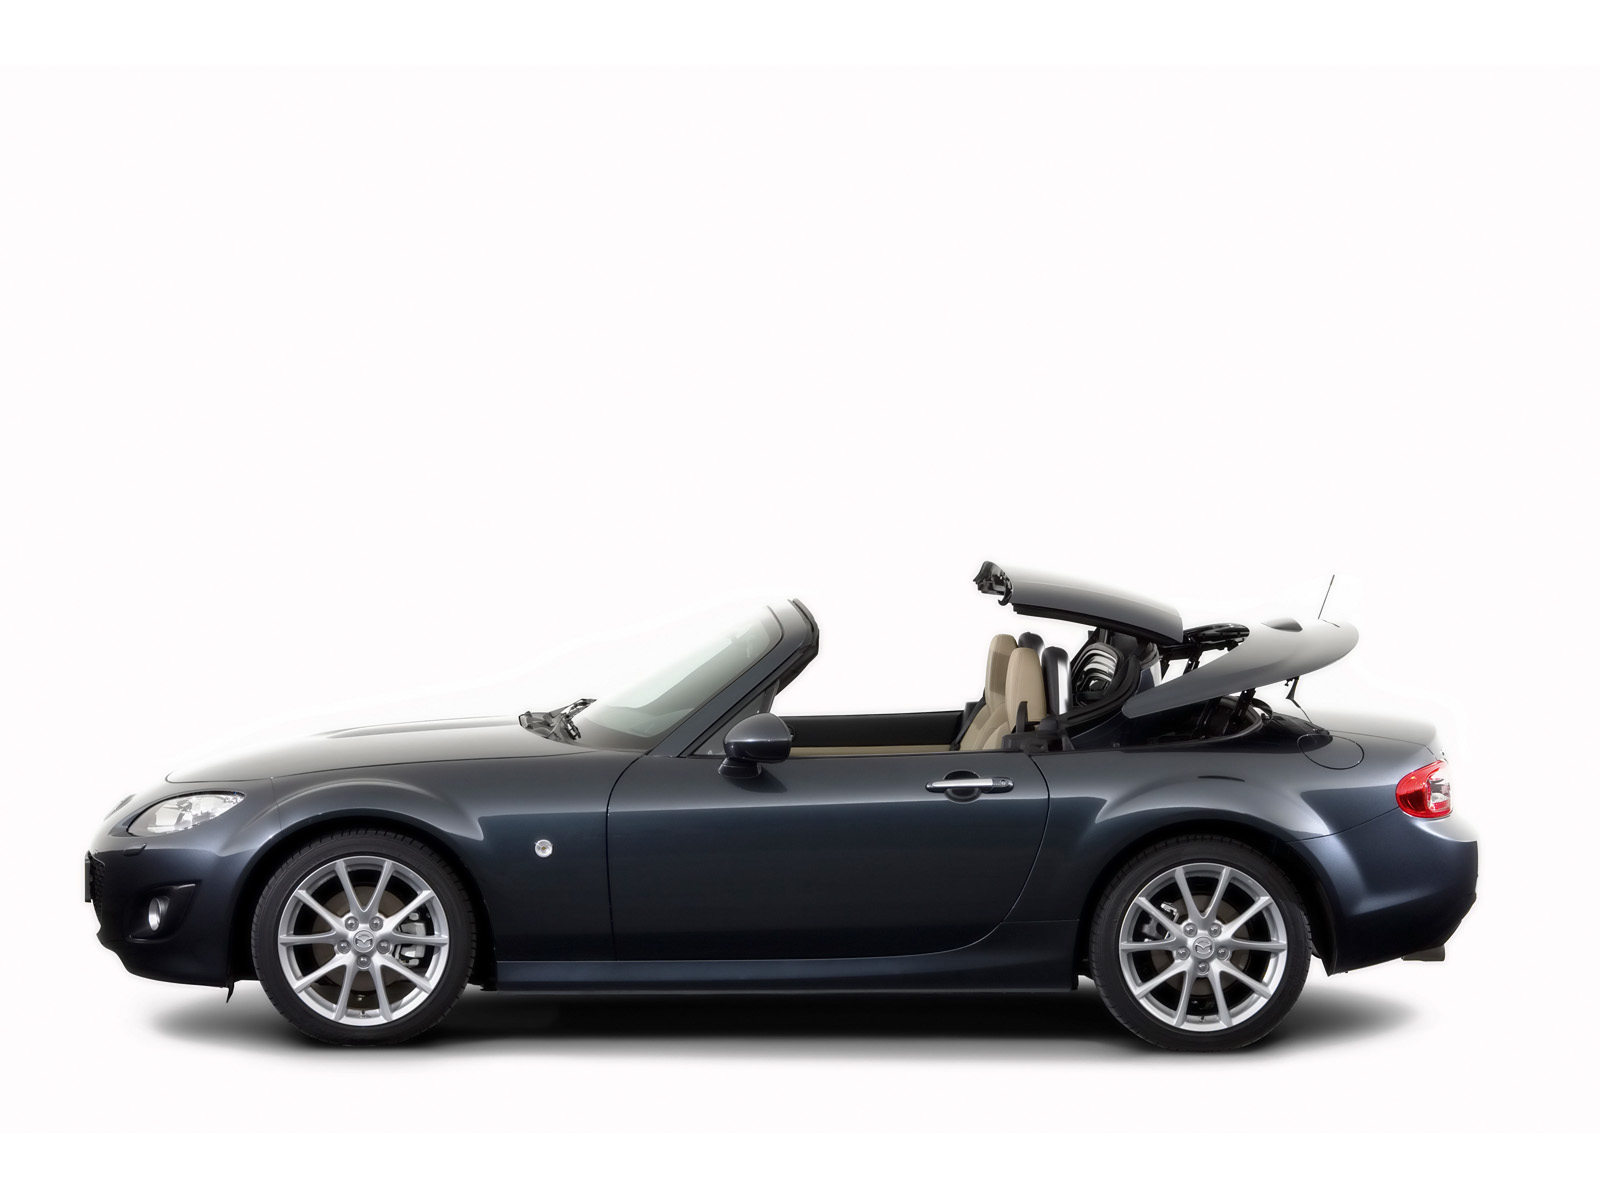 mazda mx-5 roadster-coupé technical details, history, photos on